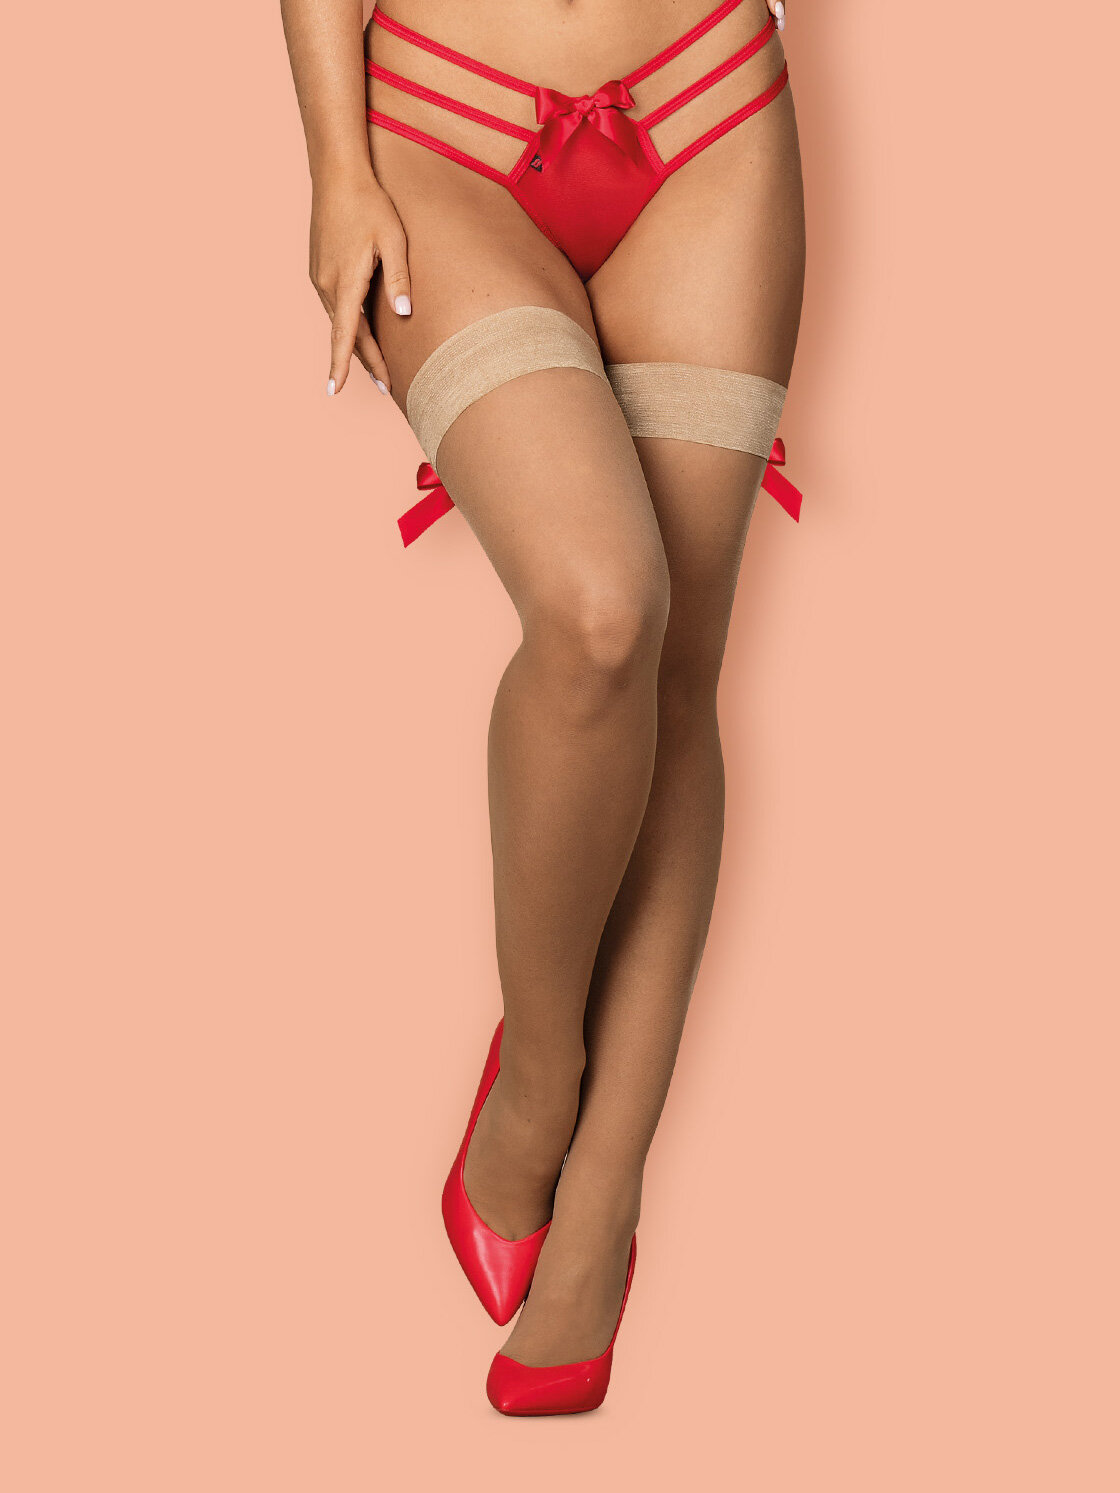 Obsessive Dresuri S808 stockings Crem